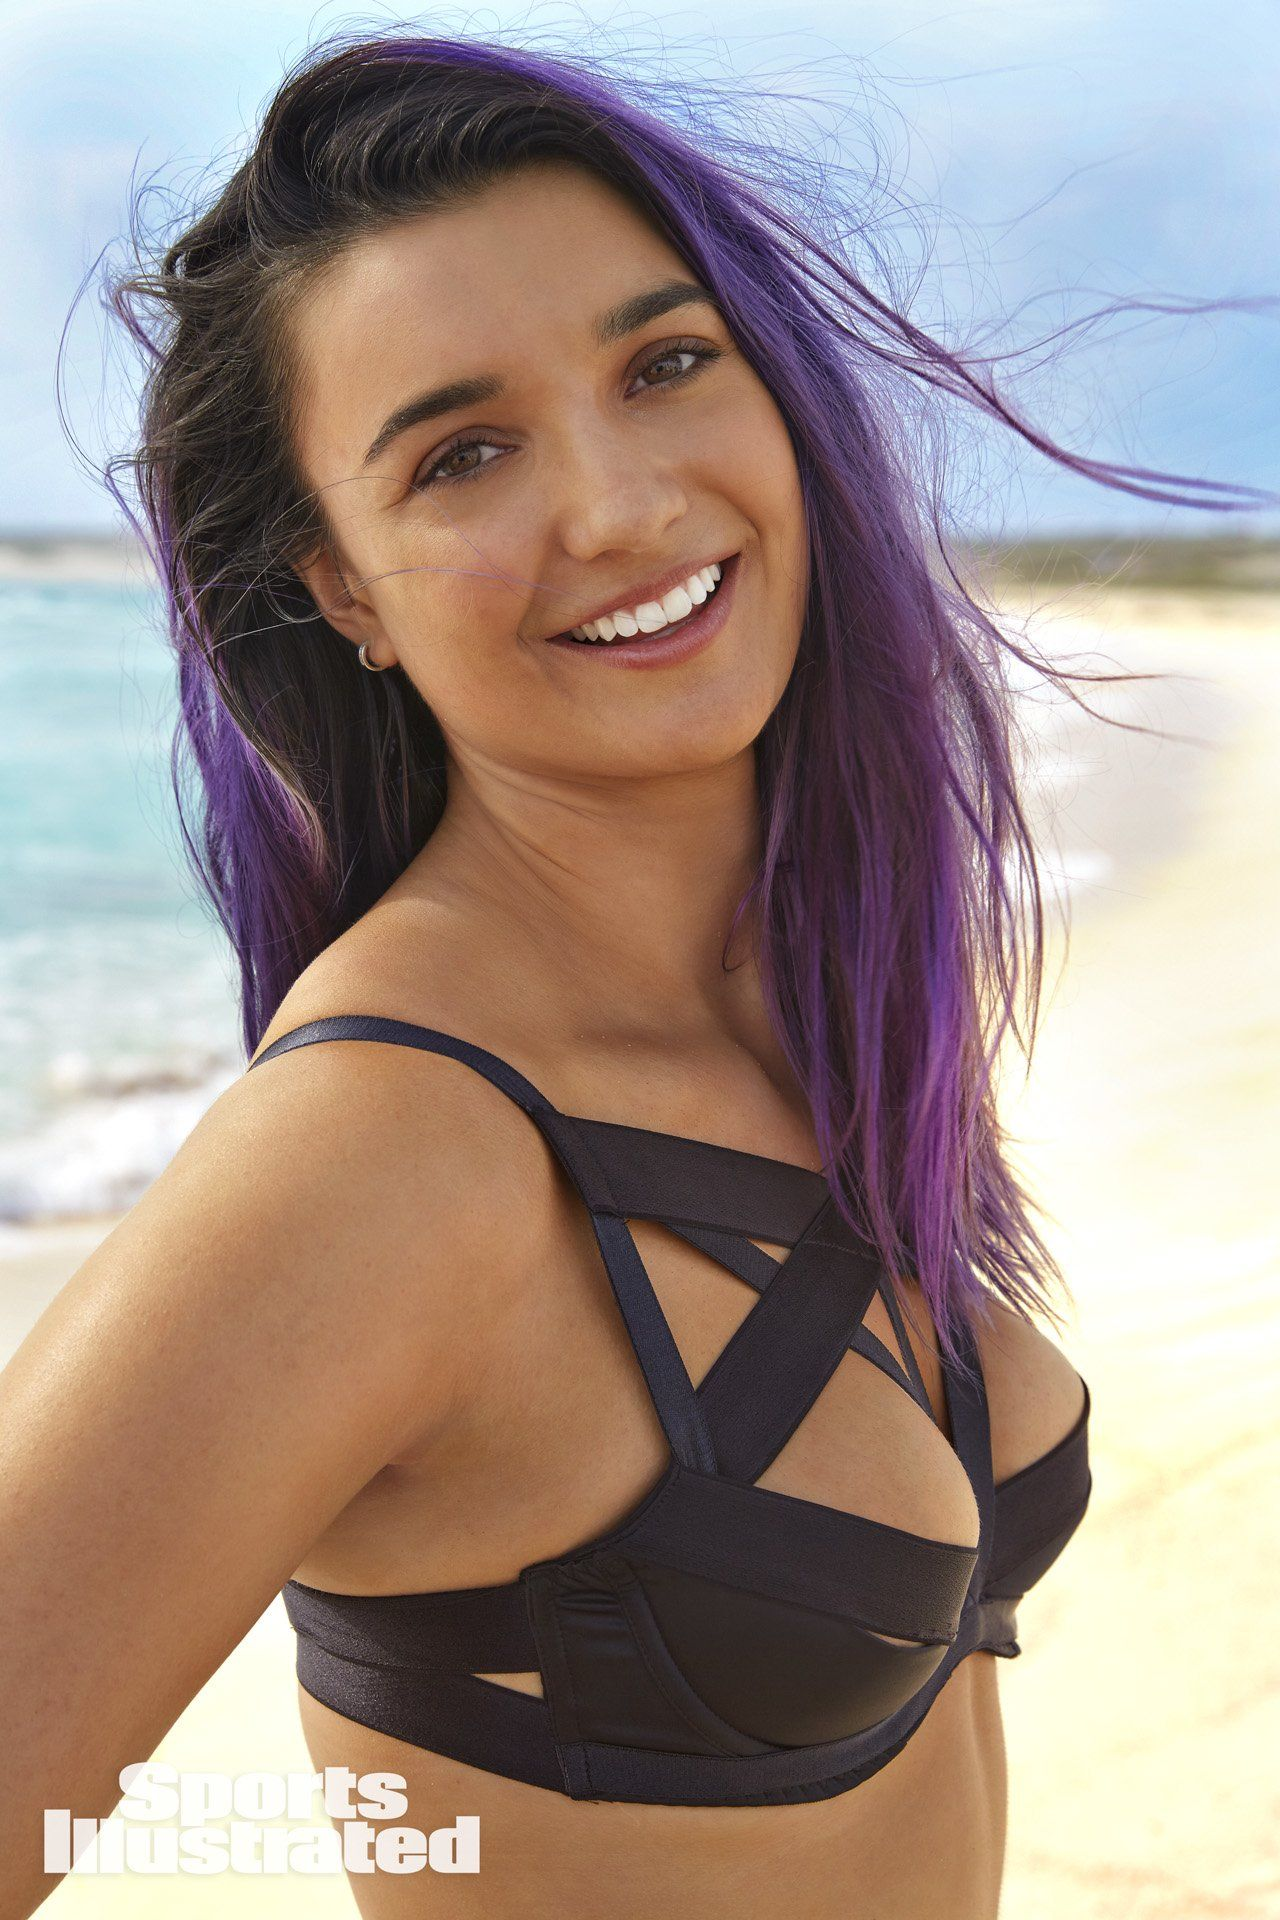 Brenna Huckaby Si Swimsuit Issue 2018